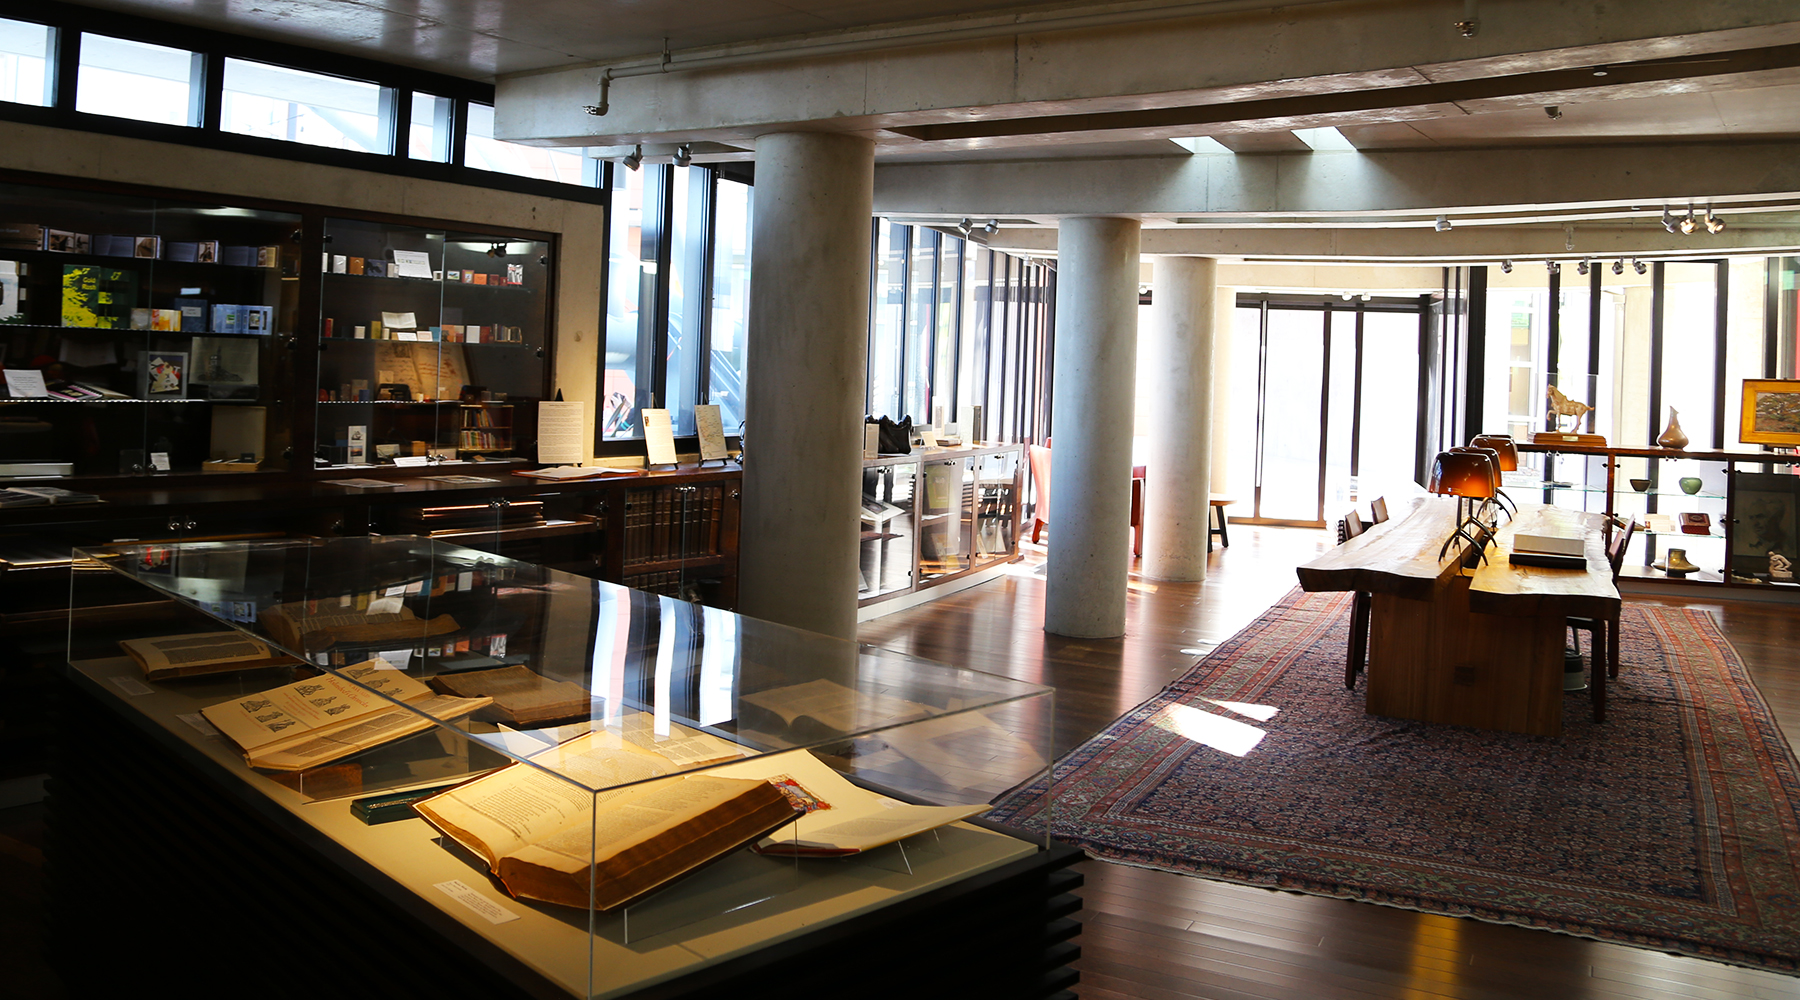 Photo of the interior view of the Hervey Family Rare Book Room located on the 9th floor of the Central Library.